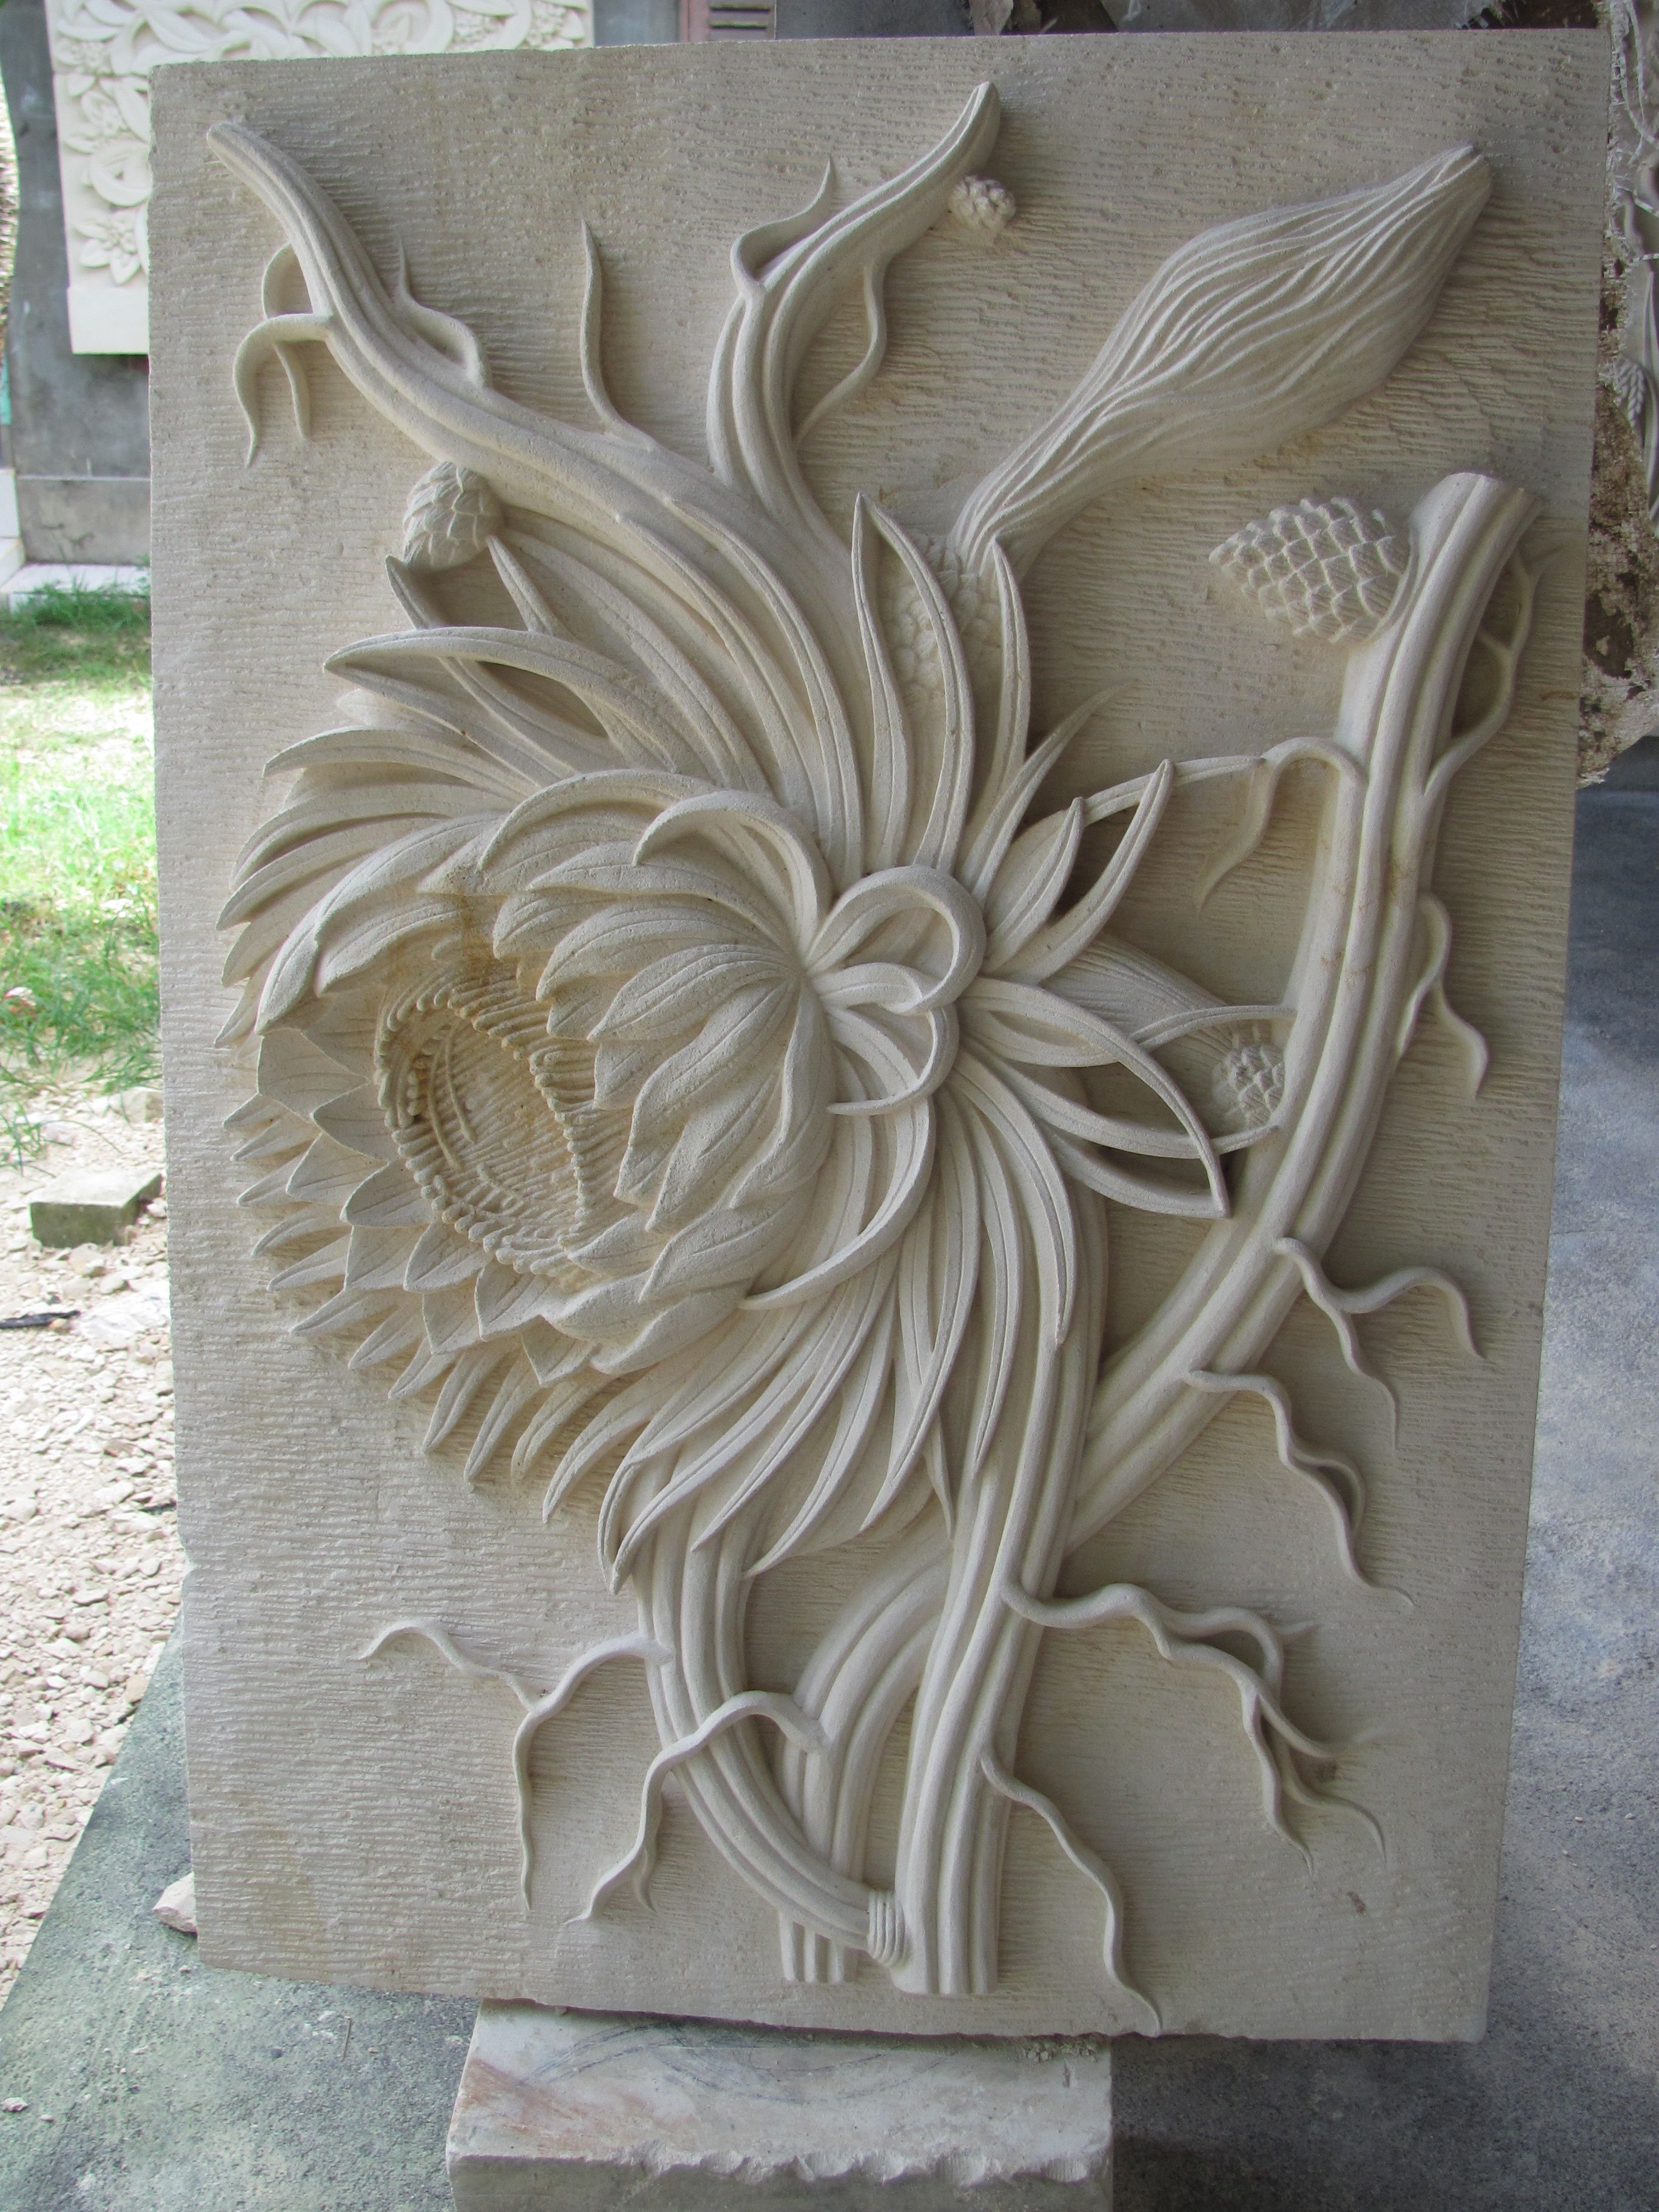 Stone carving flower up close art inspiration